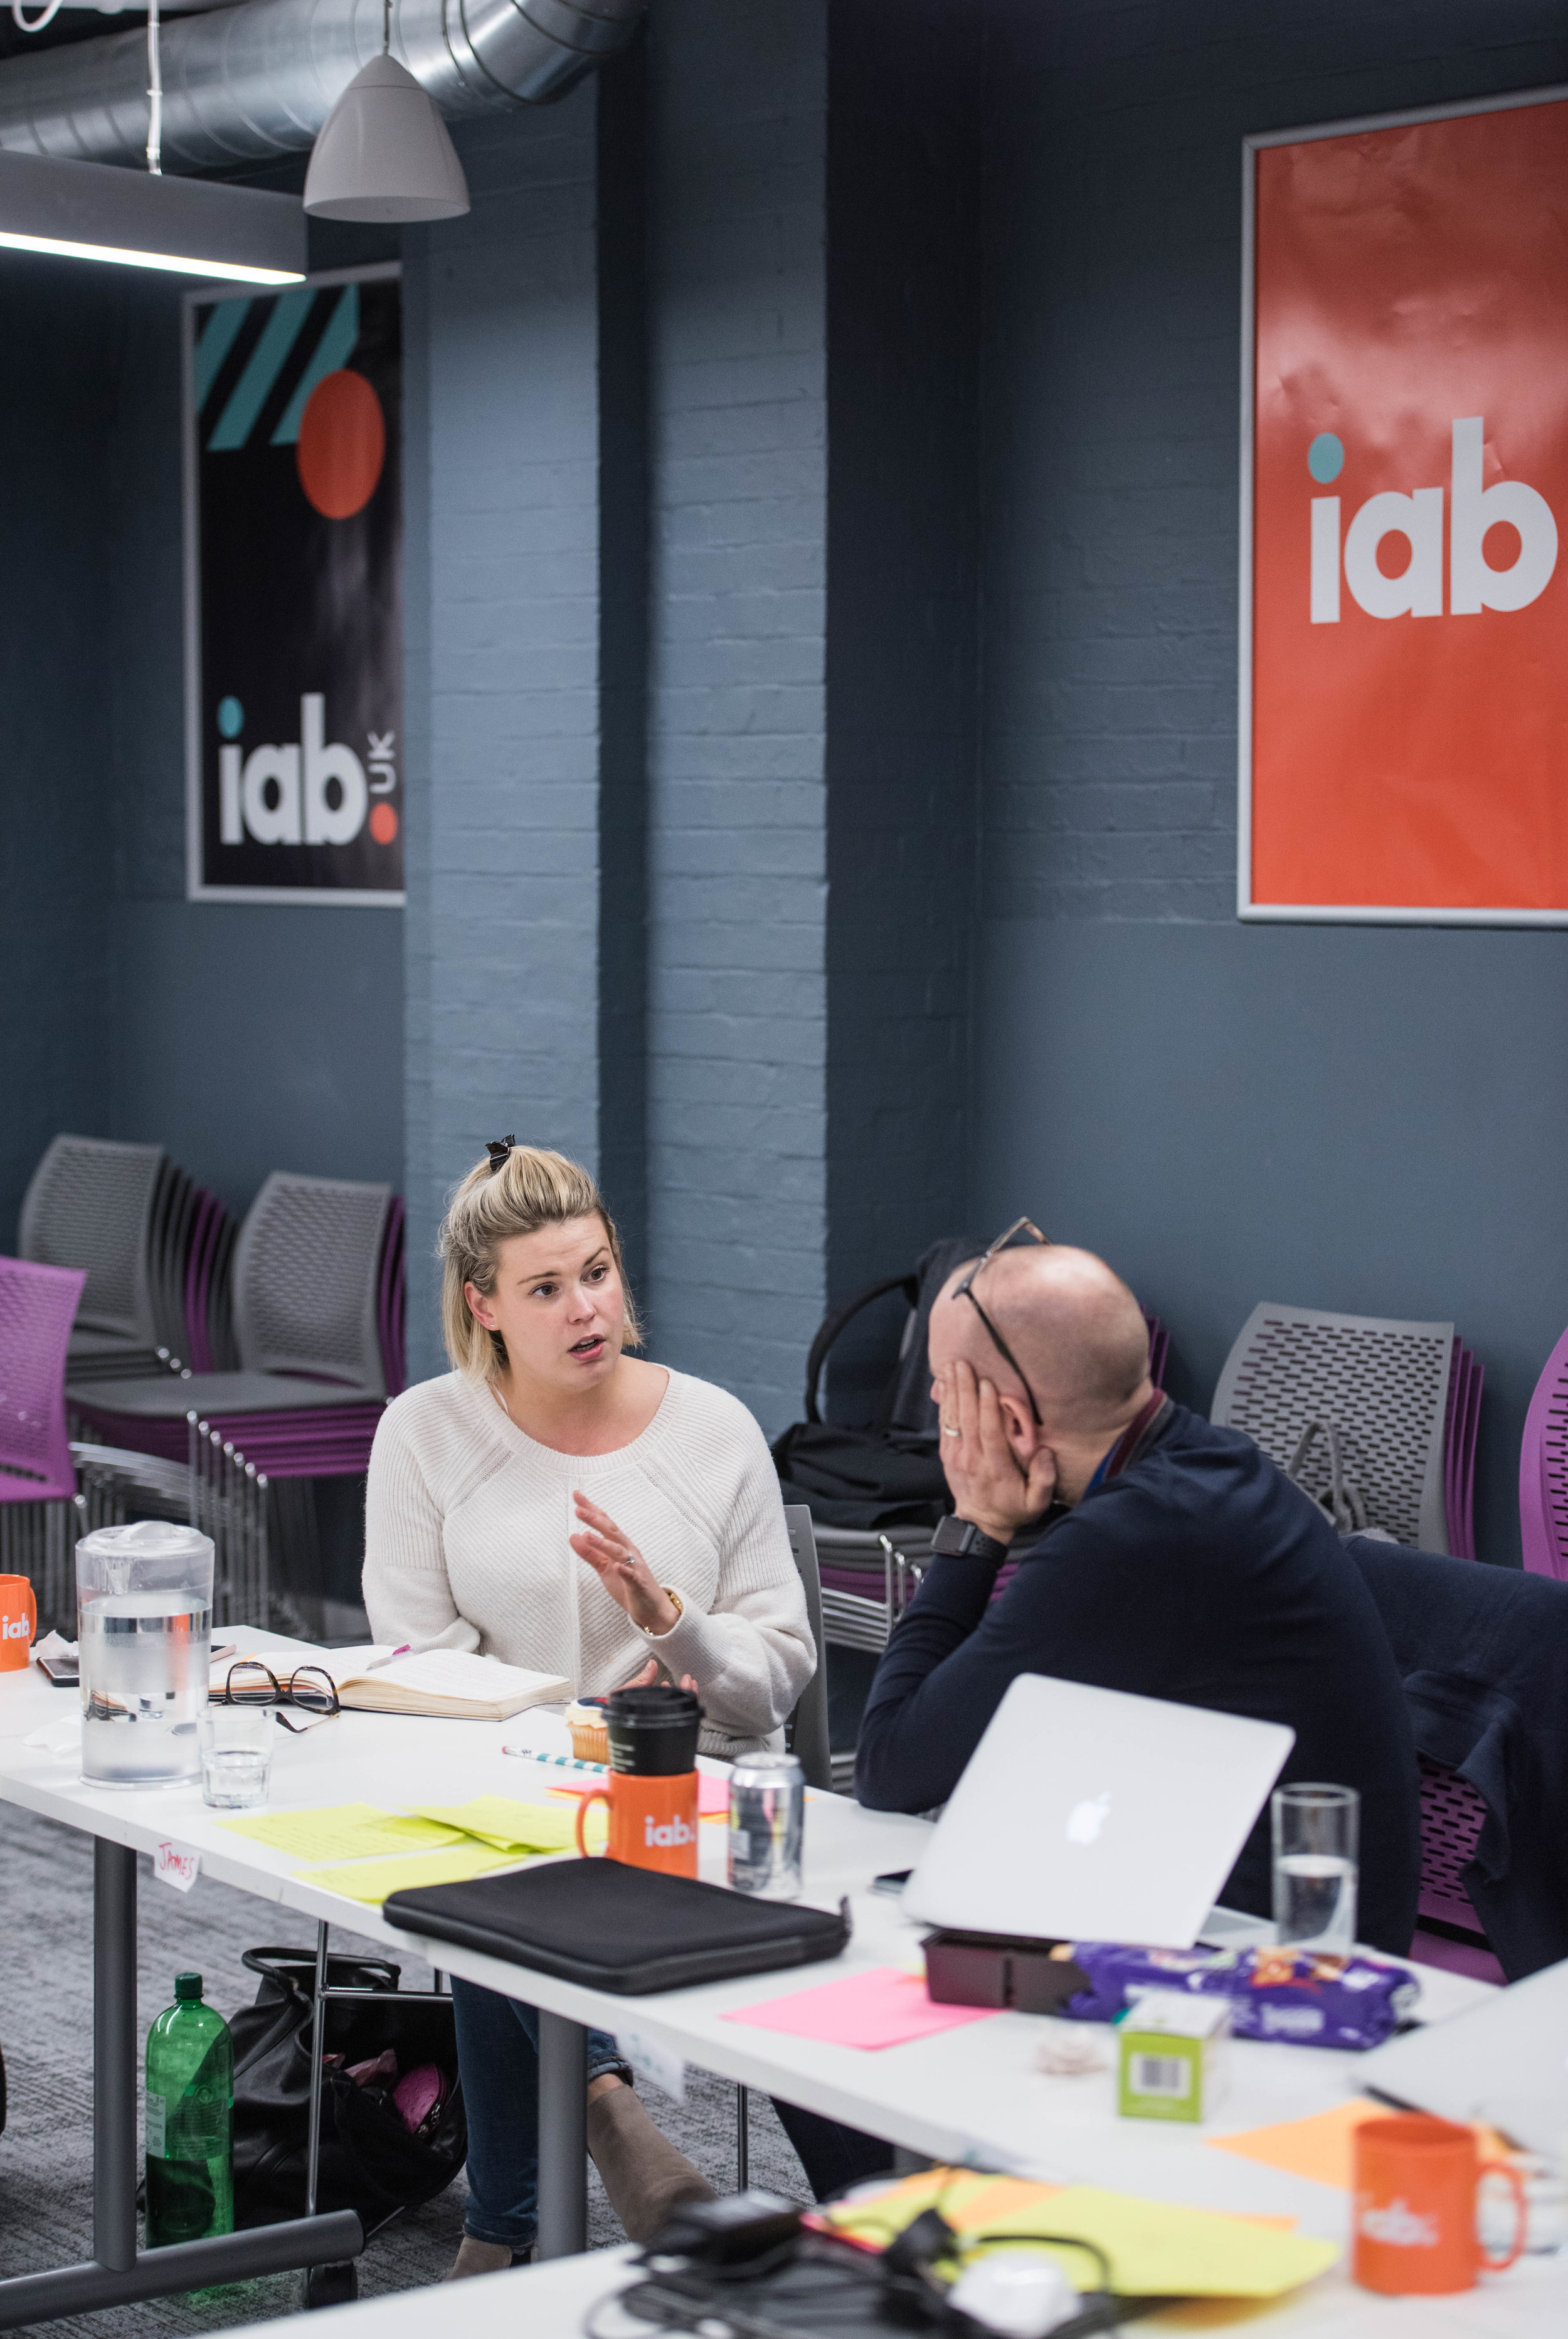 IAB Uk_Incidental Shots_SM (300 of 312).jpg